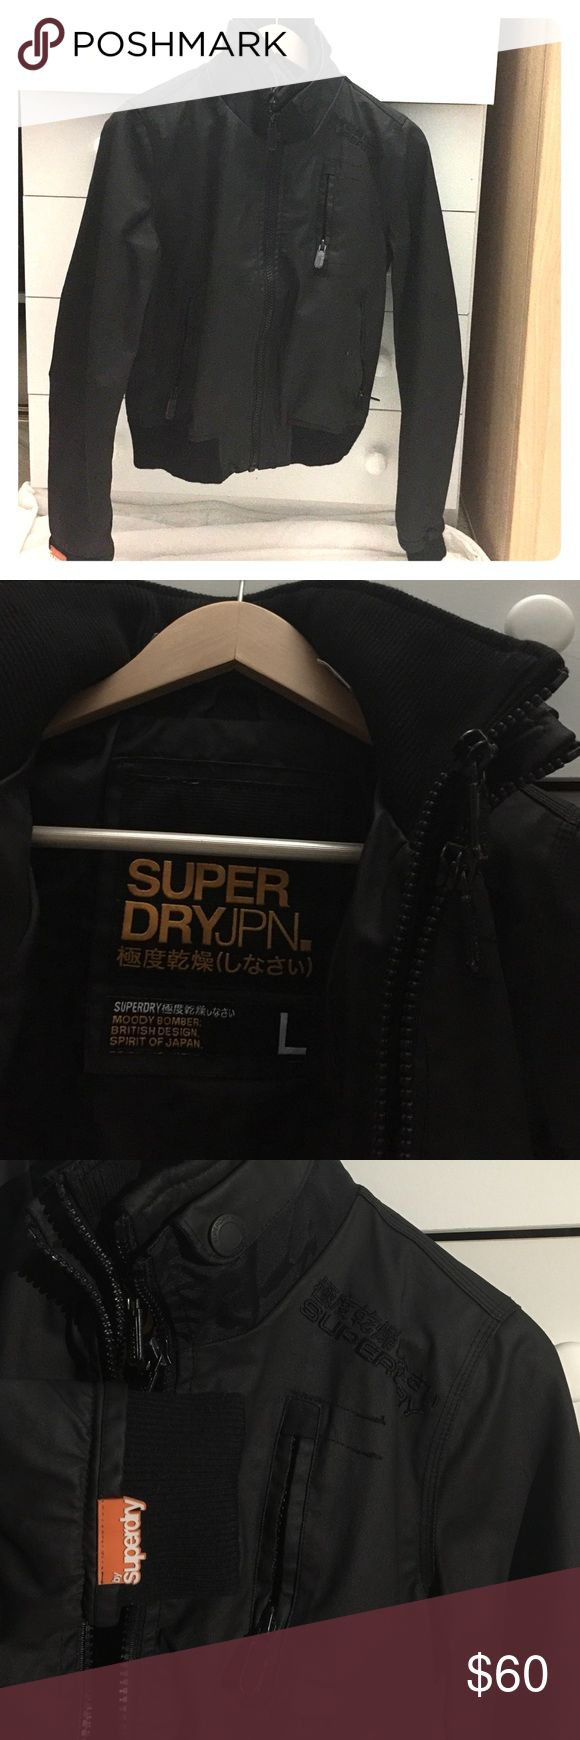 """Superdry Jacket Superdry jacket """"moody bomber"""" . In good condition . No rip, no stain, no tear. Unisex. Can fit a size small or medium in woman. Superdry Jackets & Coats Utility Jackets"""